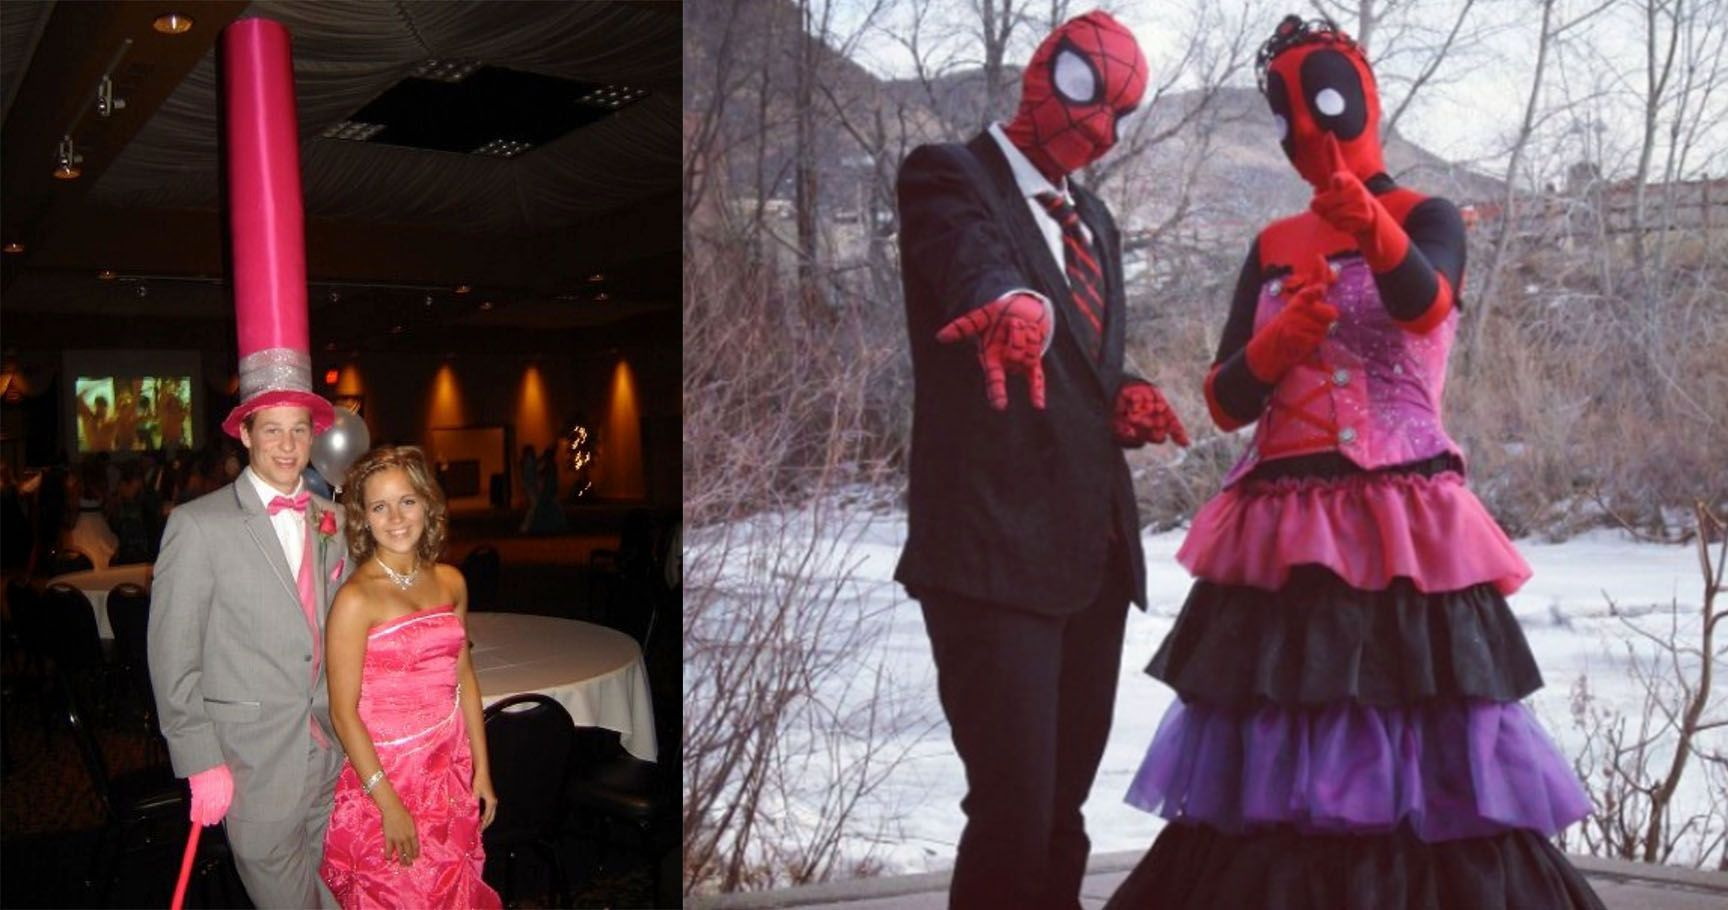 24 Prom Couples Who Are A Match Made In Hades | TheThings